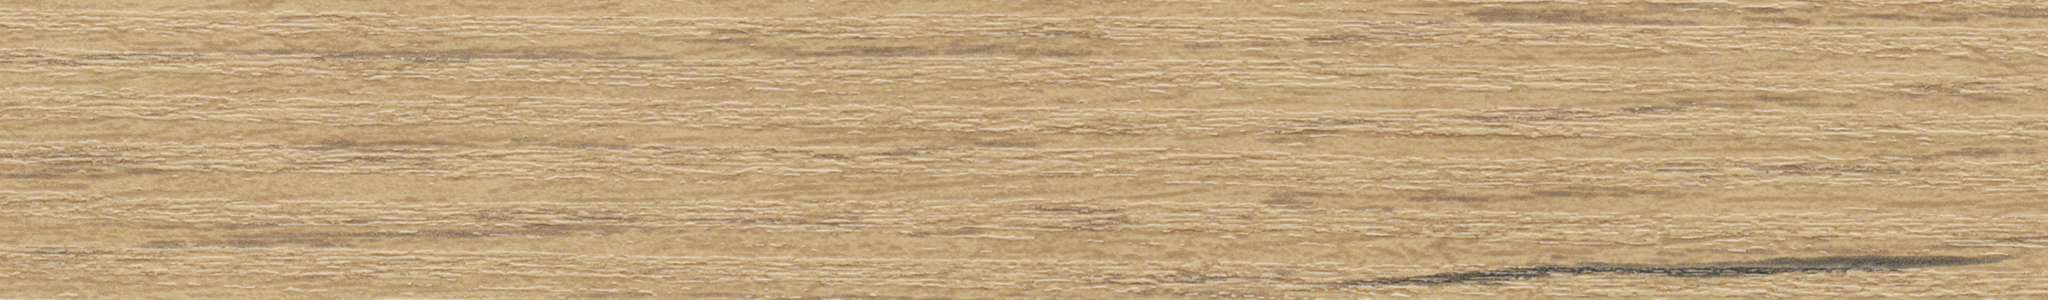 HD 244262 ABS Edge Oak Lancelot Pore